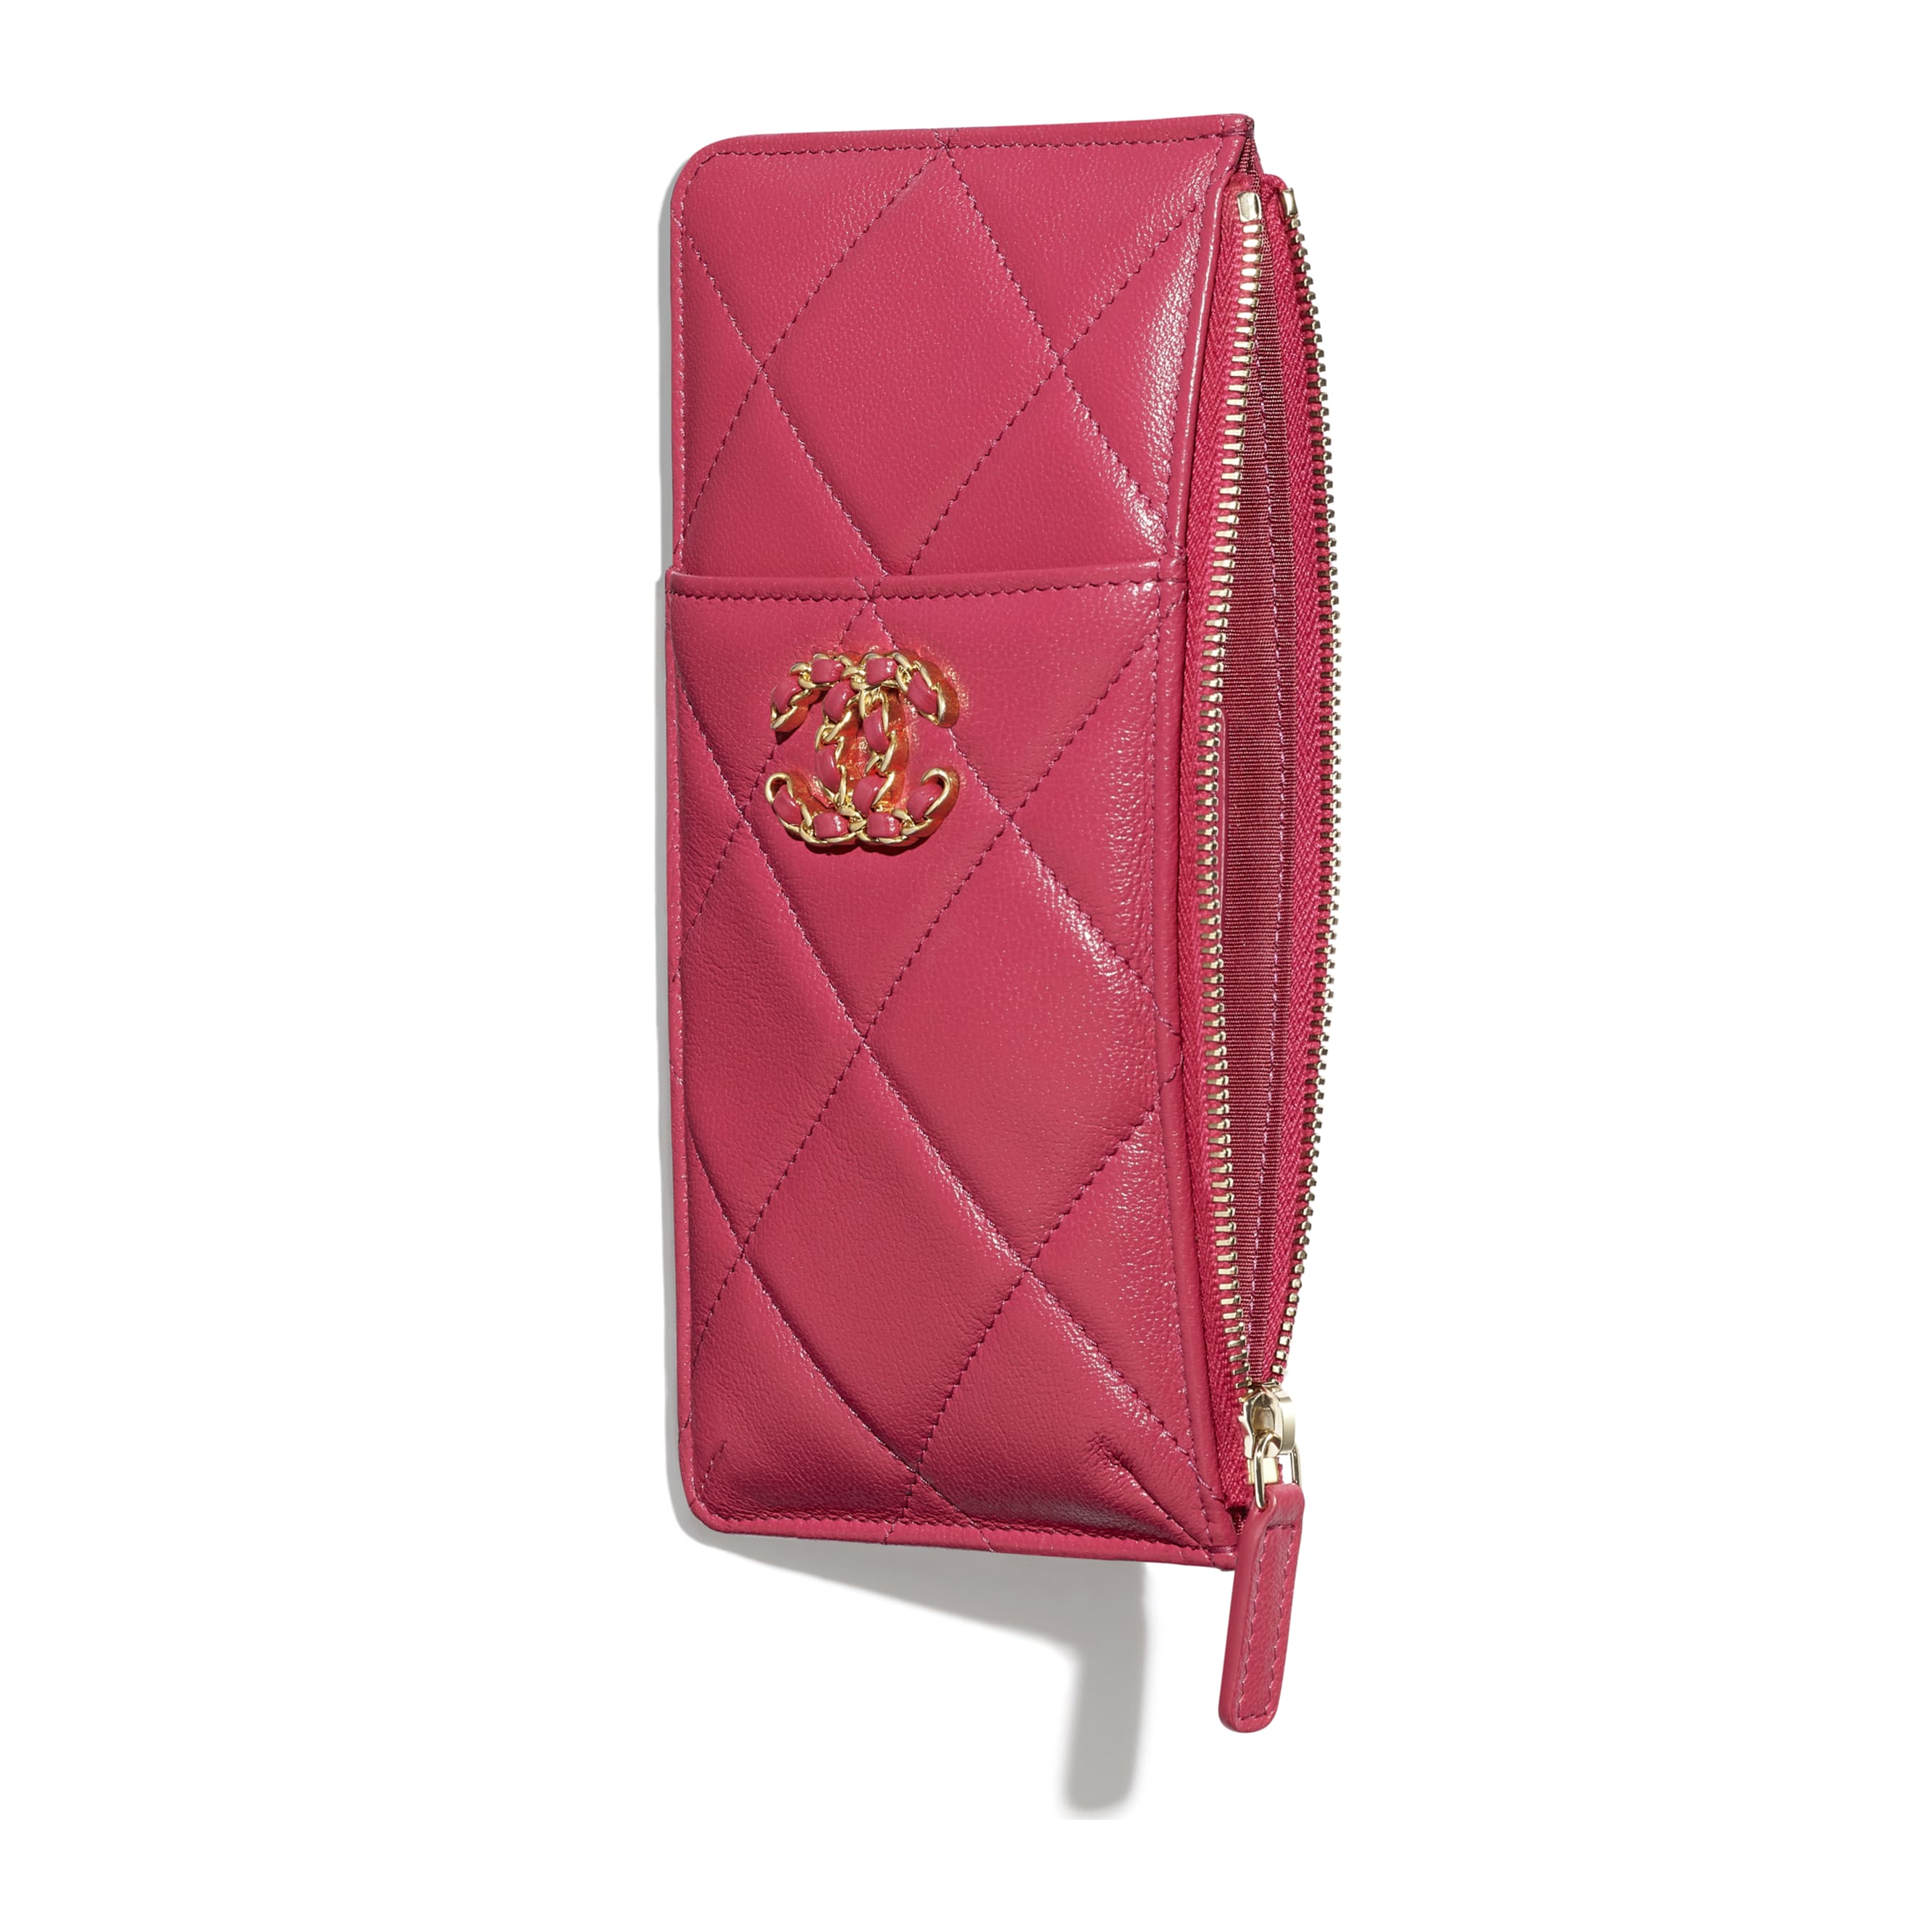 CHANEL 19 Phone & Card Holder - Dark Pink - Lambskin, Gold-Tone, Silver-Tone & Ruthenium-Finish Metal - CHANEL - Other view - see standard sized version